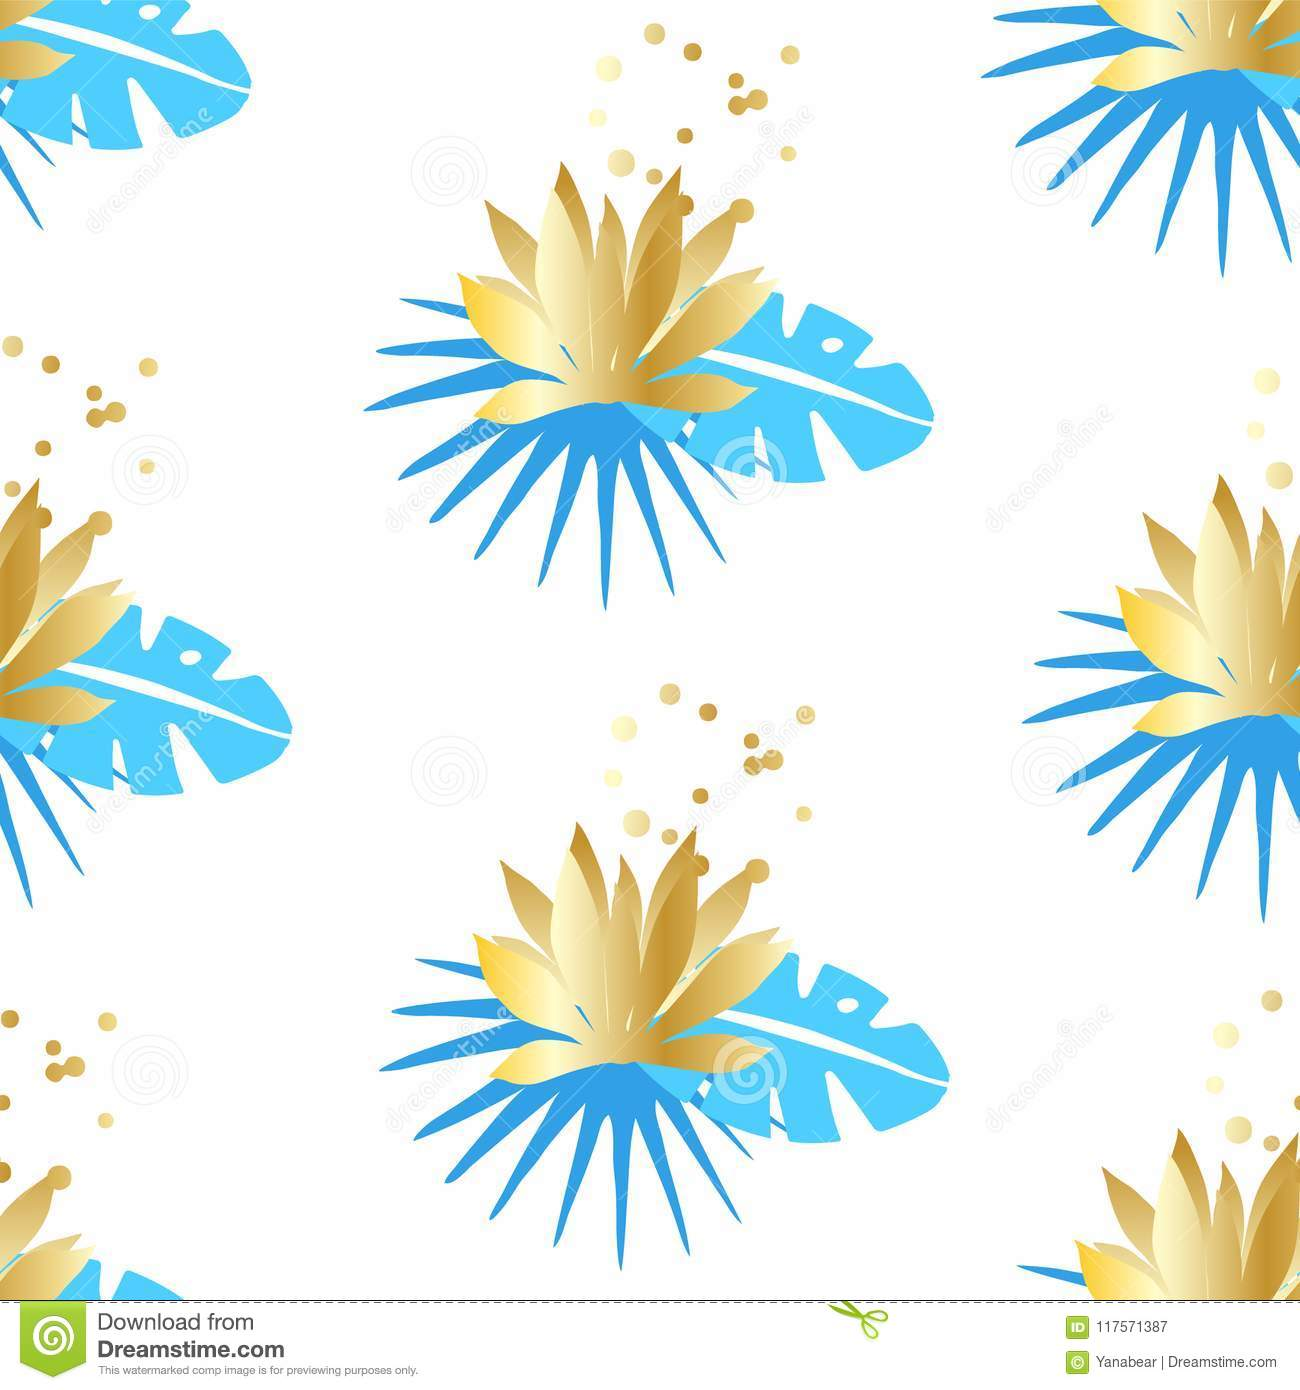 Floral seamless pattern with tropical leaves and golden lotuses on a white background. Ornament for textile and wrapping. Vector